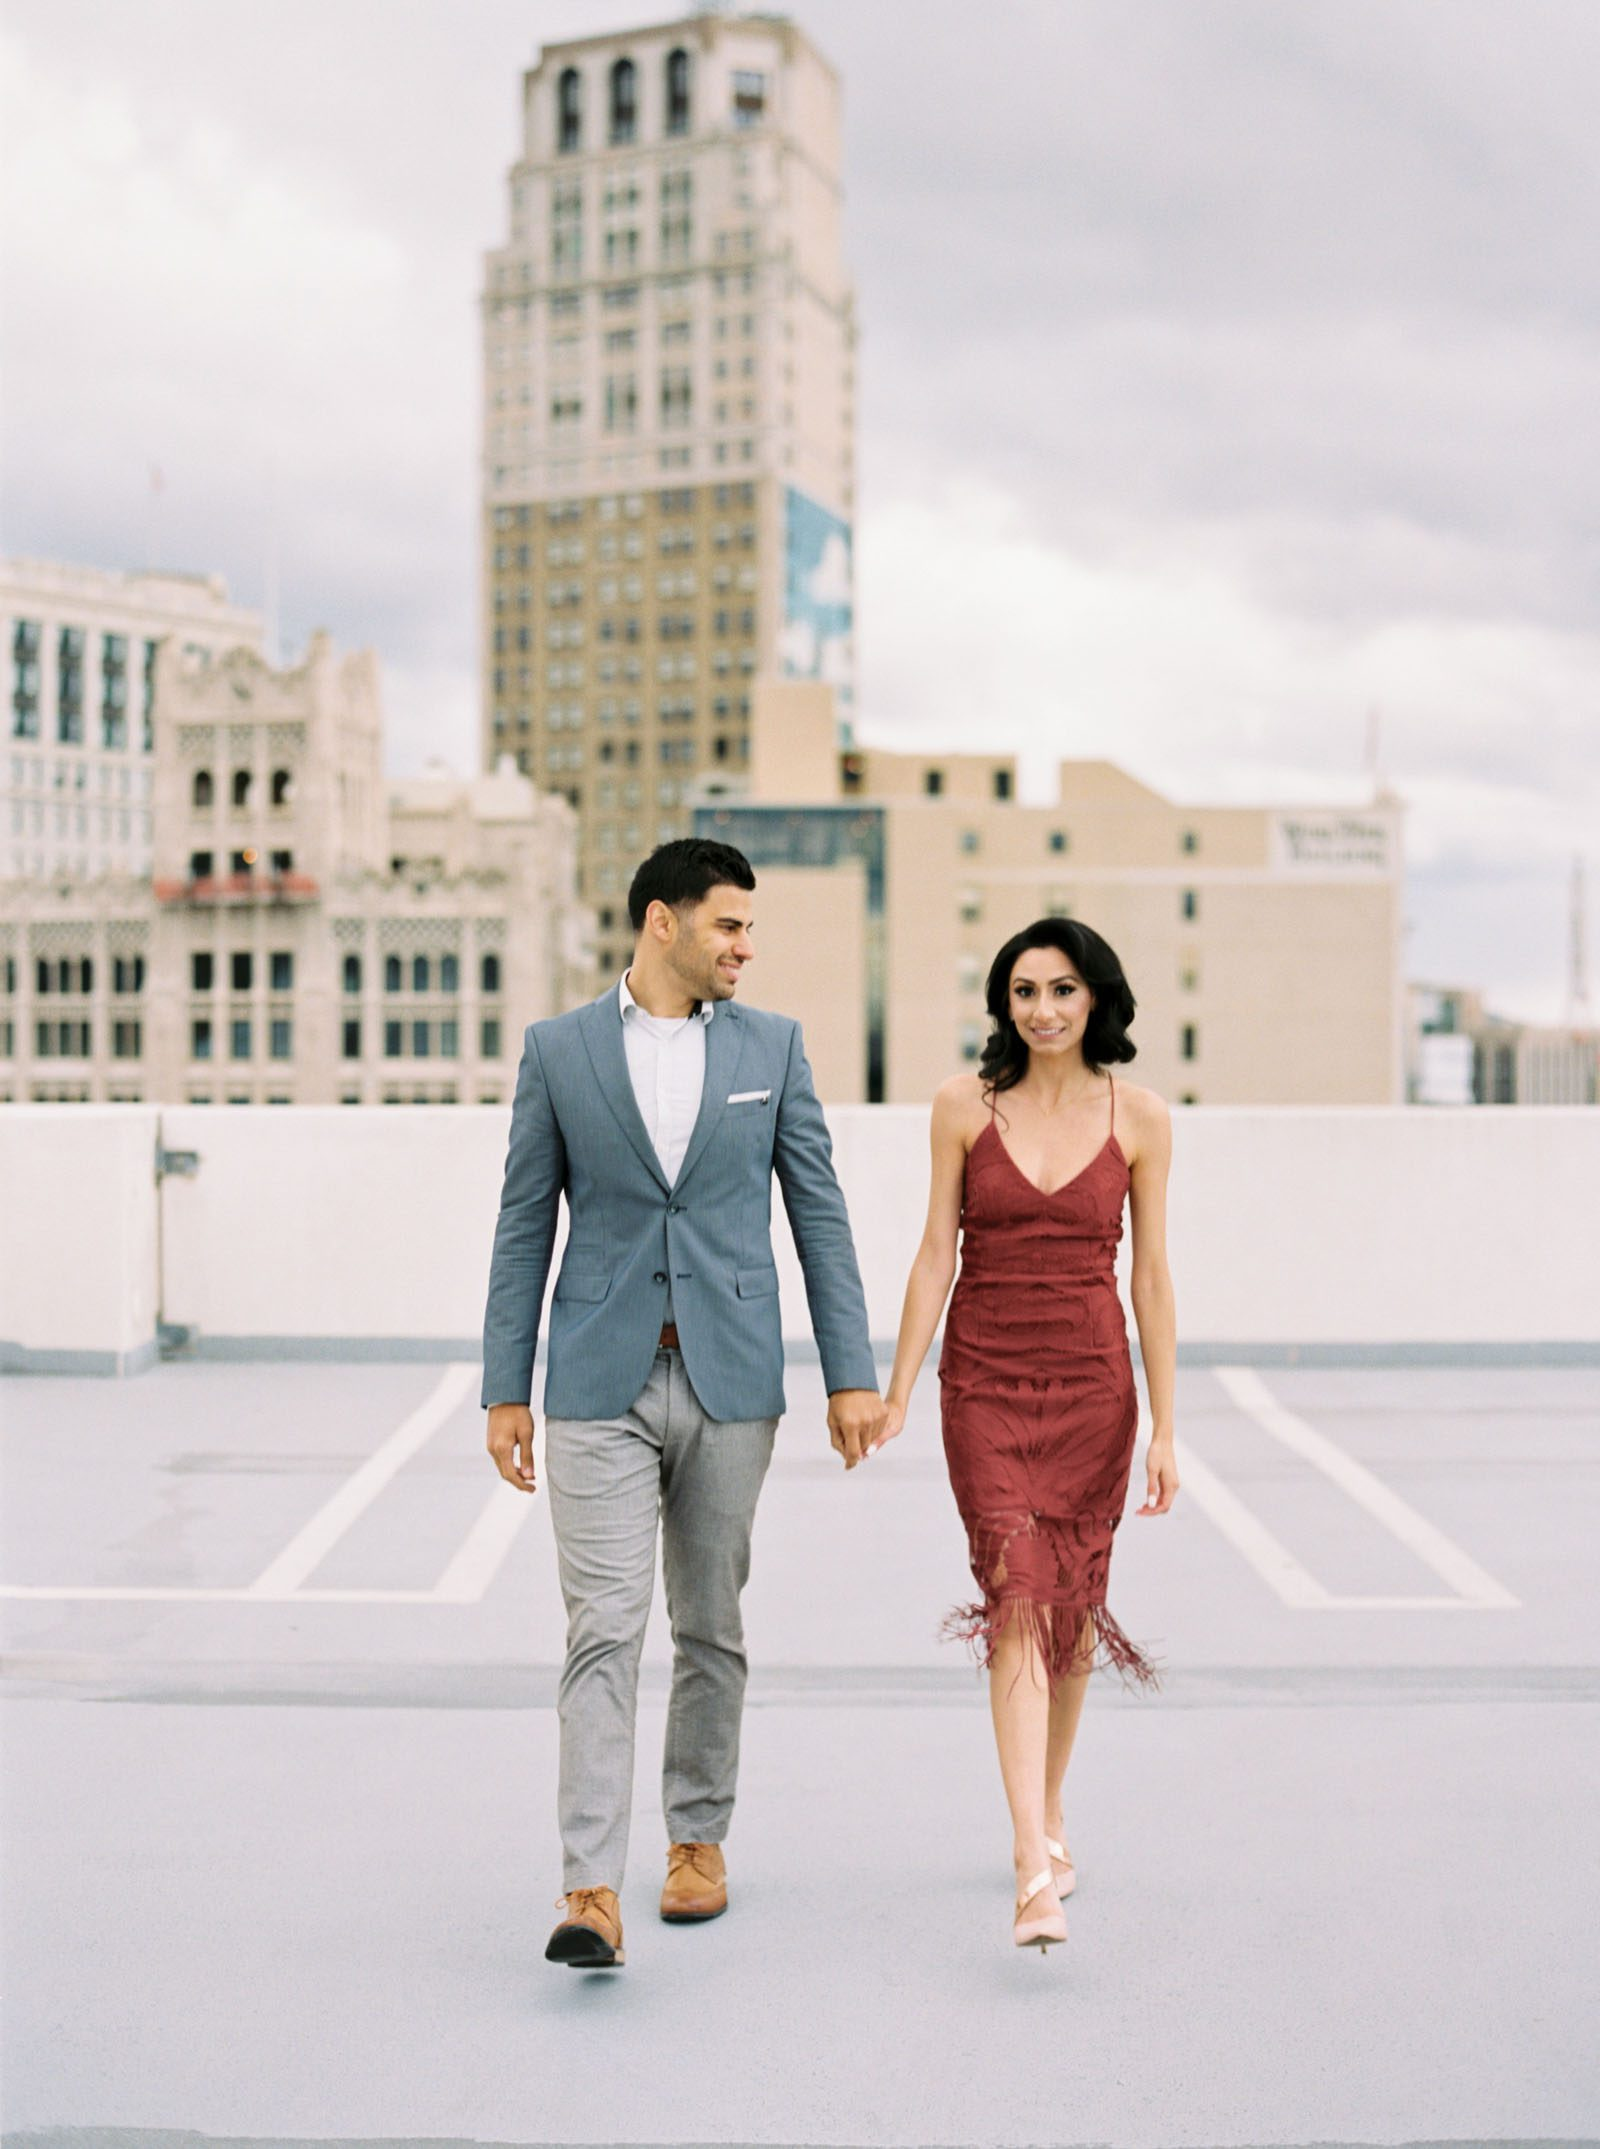 Engagement Photo outfit inspiration -krmorenophoto